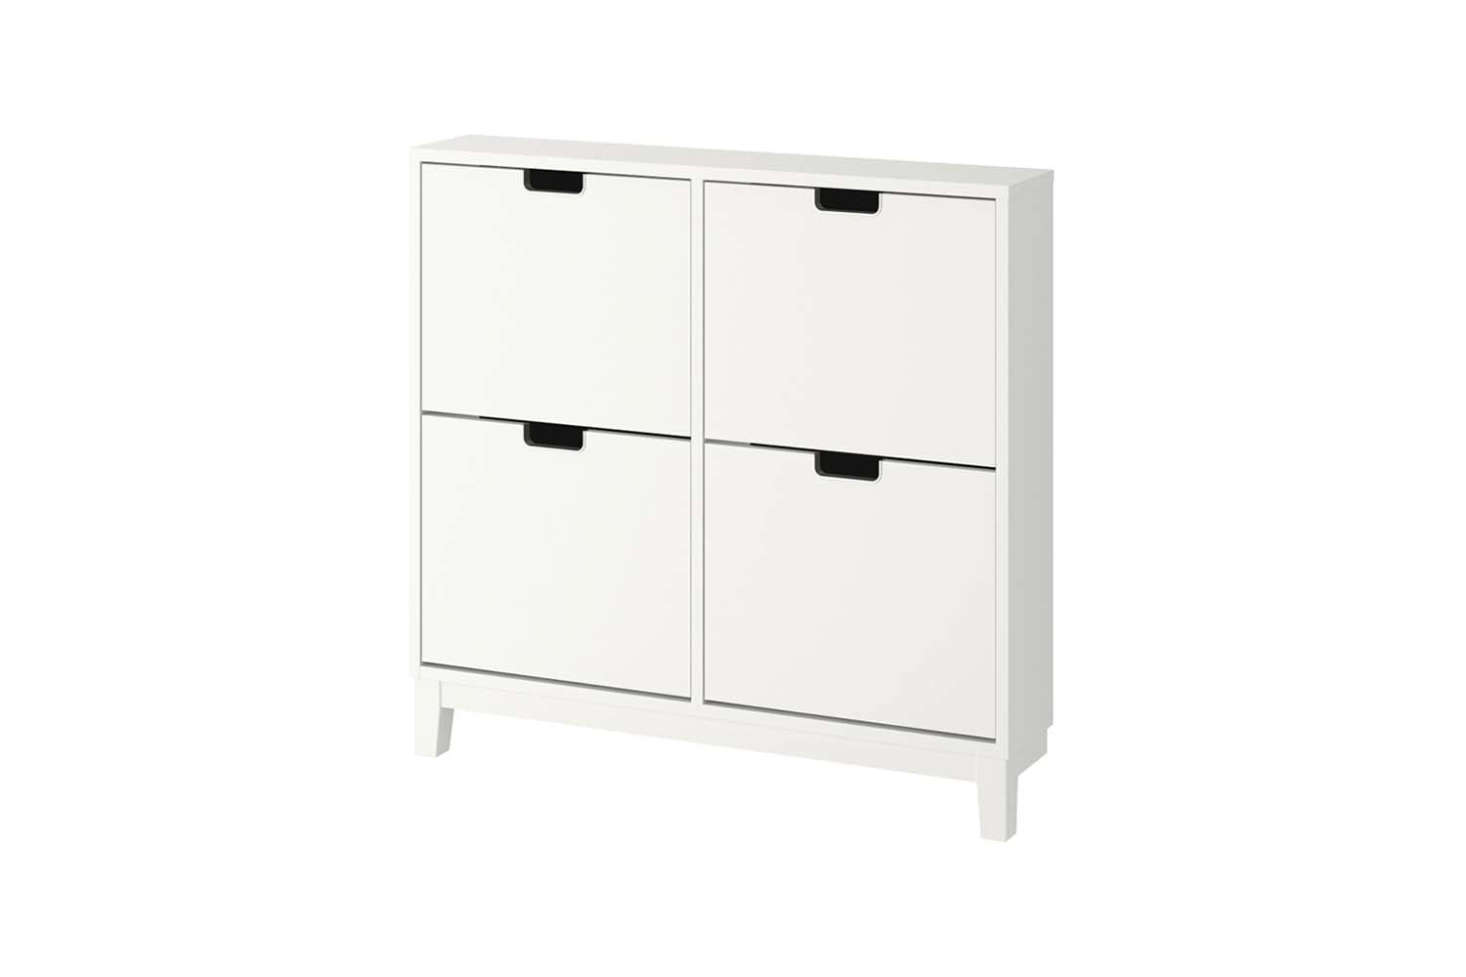 The Ikea Ställ Shoe Cabinet with 4 Compartments in White is $99. The design is also available as a taller 3-compartment unit for $9 at Ikea.